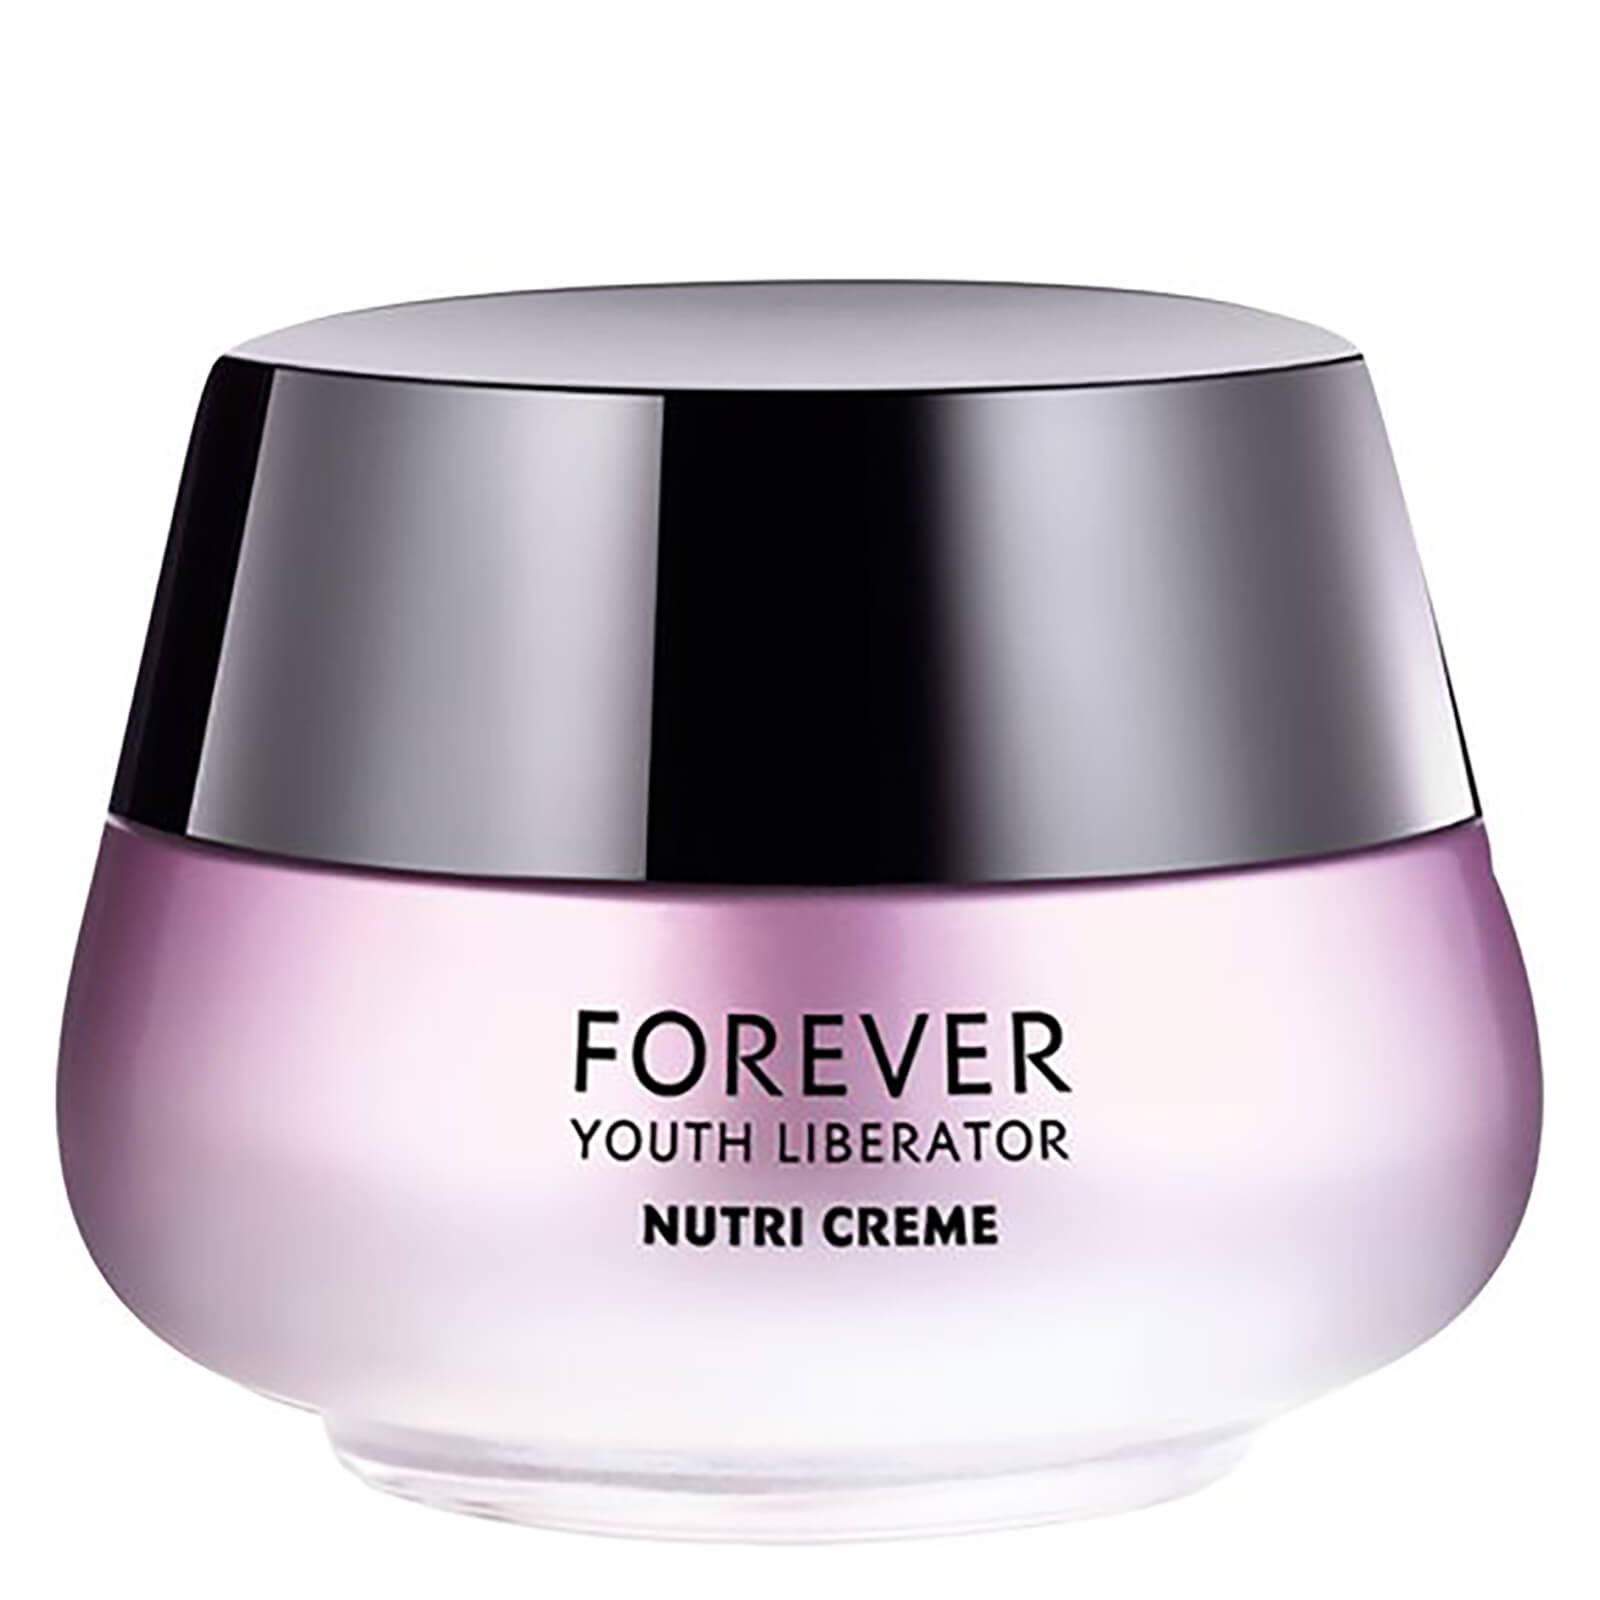 Yves Saint Laurent Forever Youth Liberator crema nutriente giorno 50 ml